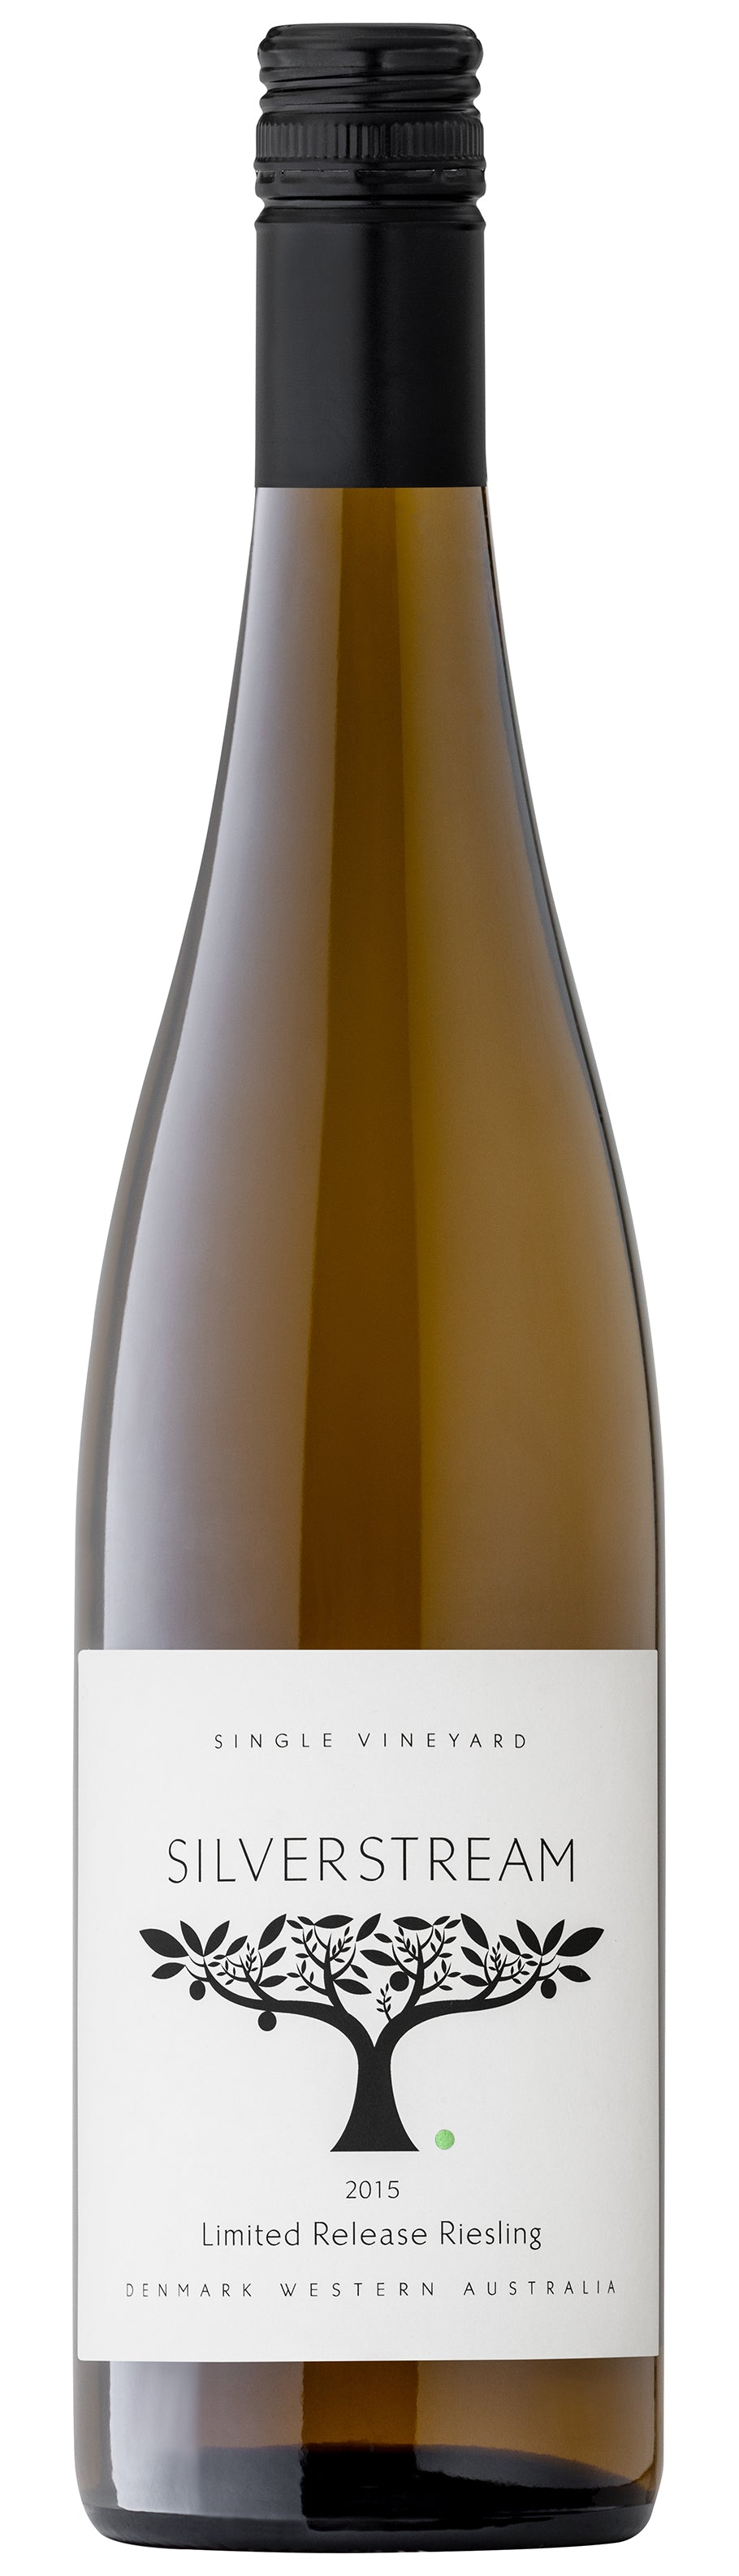 2015 Limited Release Riesling